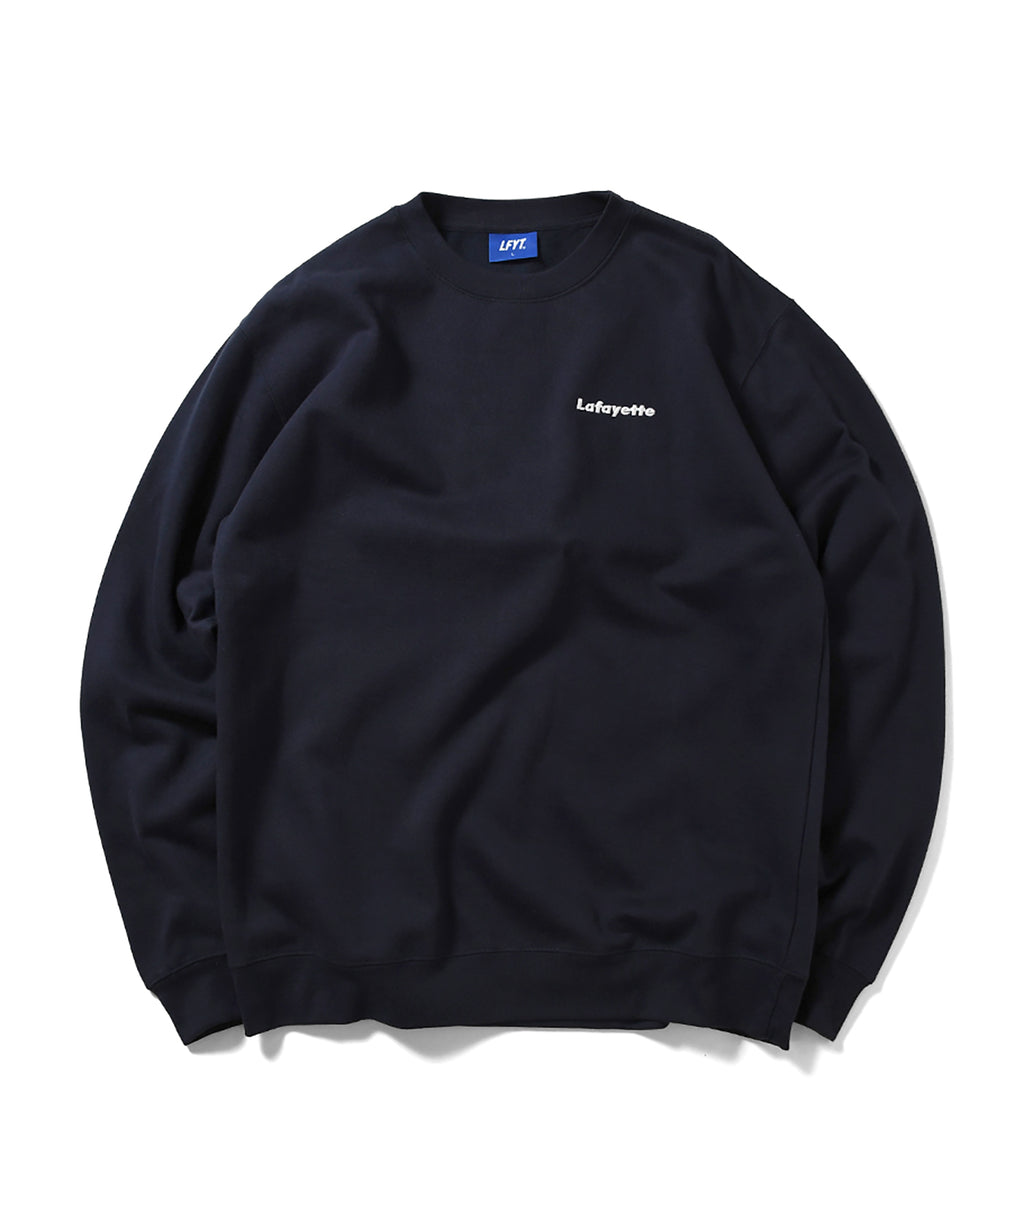 BIG APPLE CREWNECK SWEATSHIRT NAVY LA200701